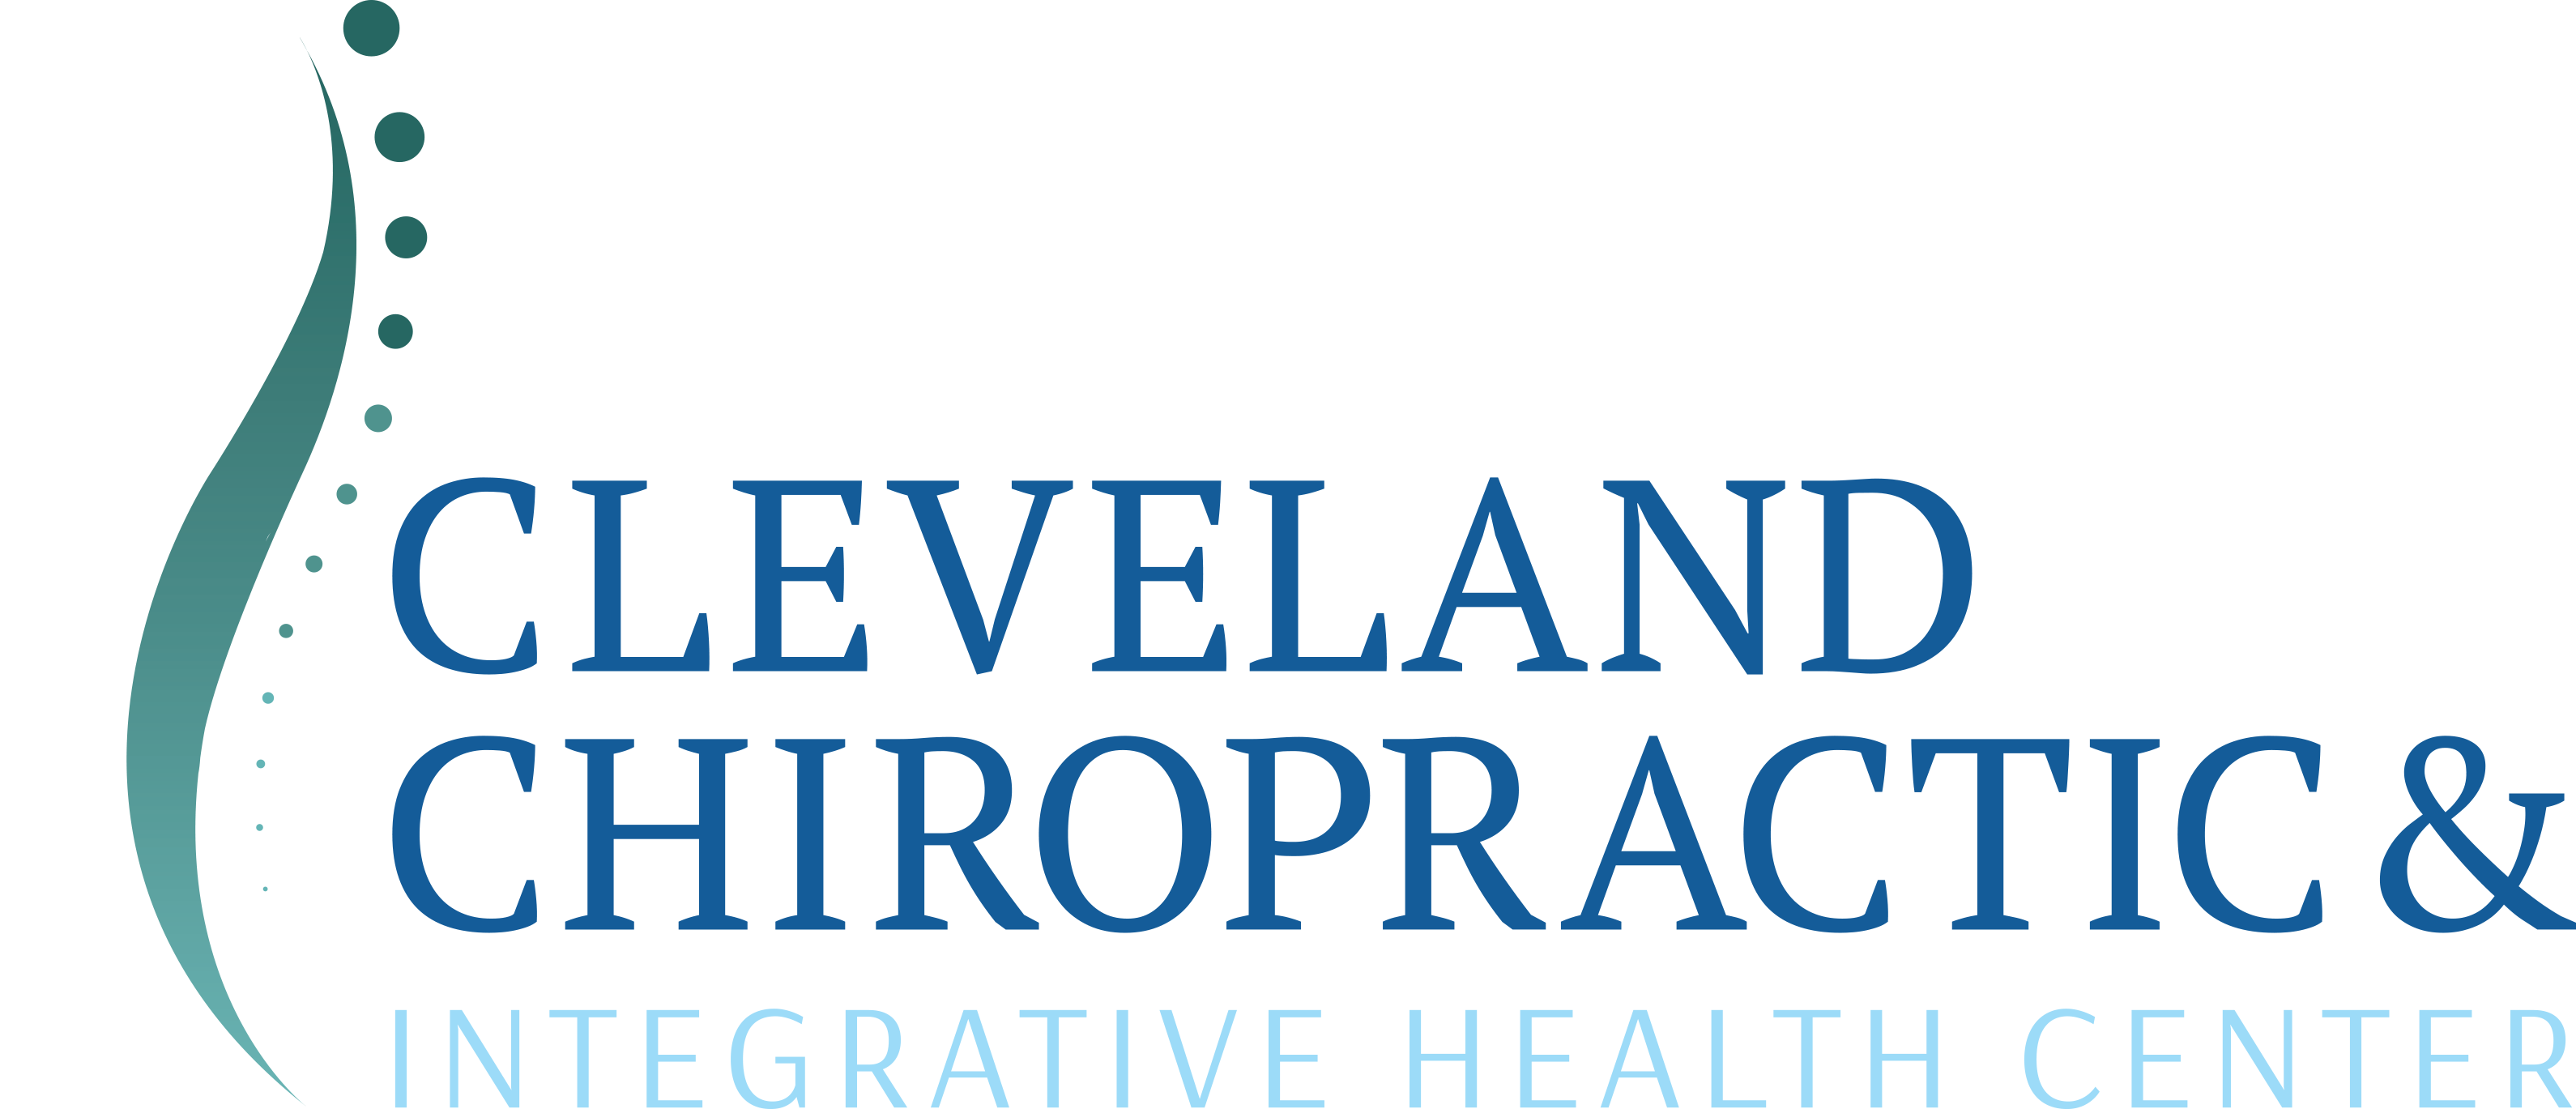 Cleveland Chiropractic and Integrative Health Center Photo